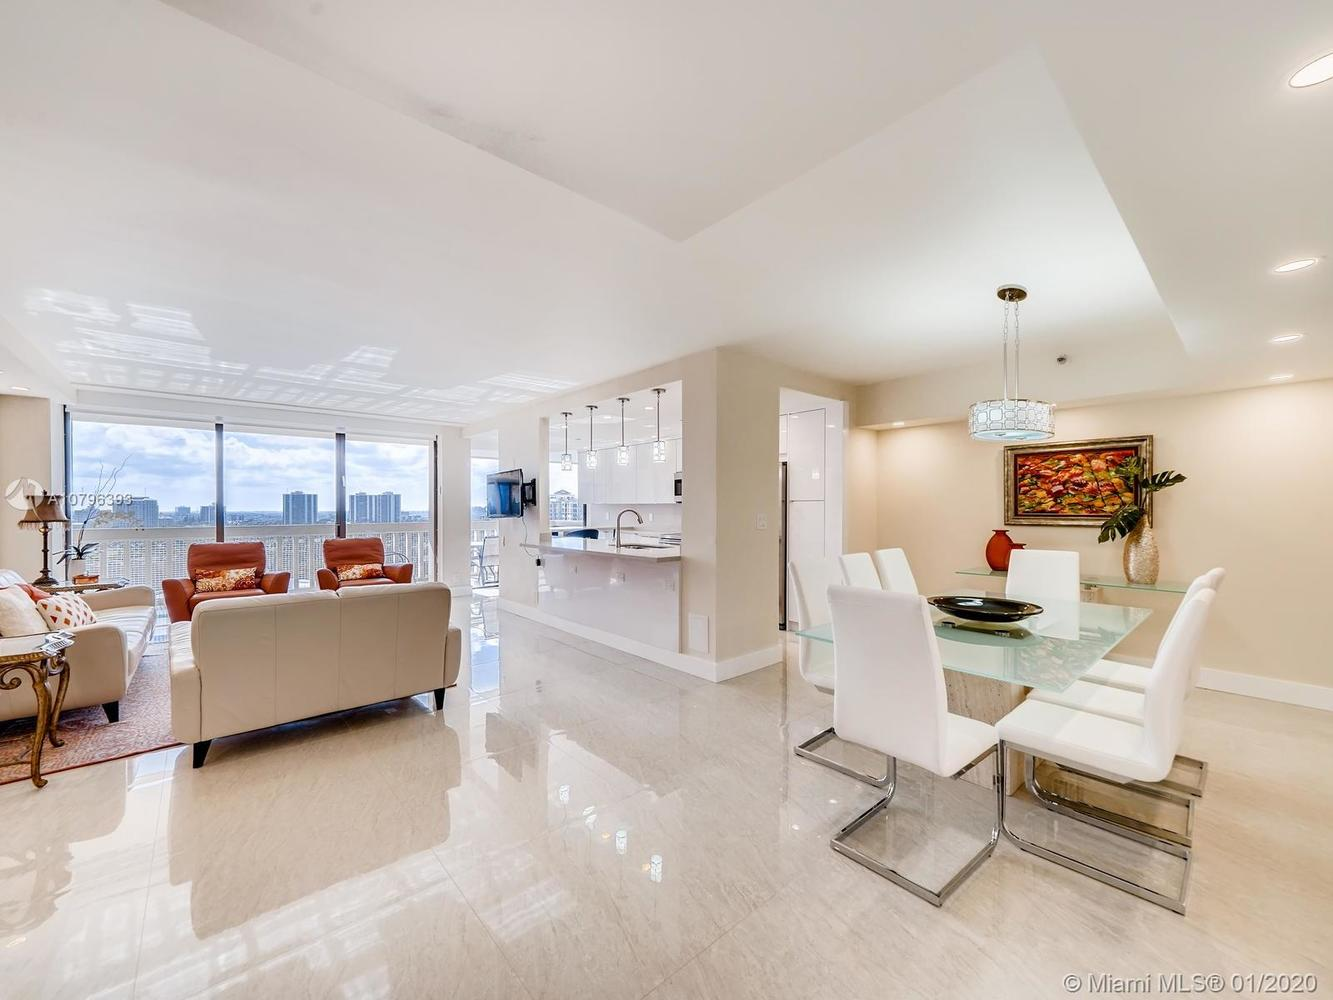 19707 Turnberry Way, Unit 16L Aventura, FL 33180